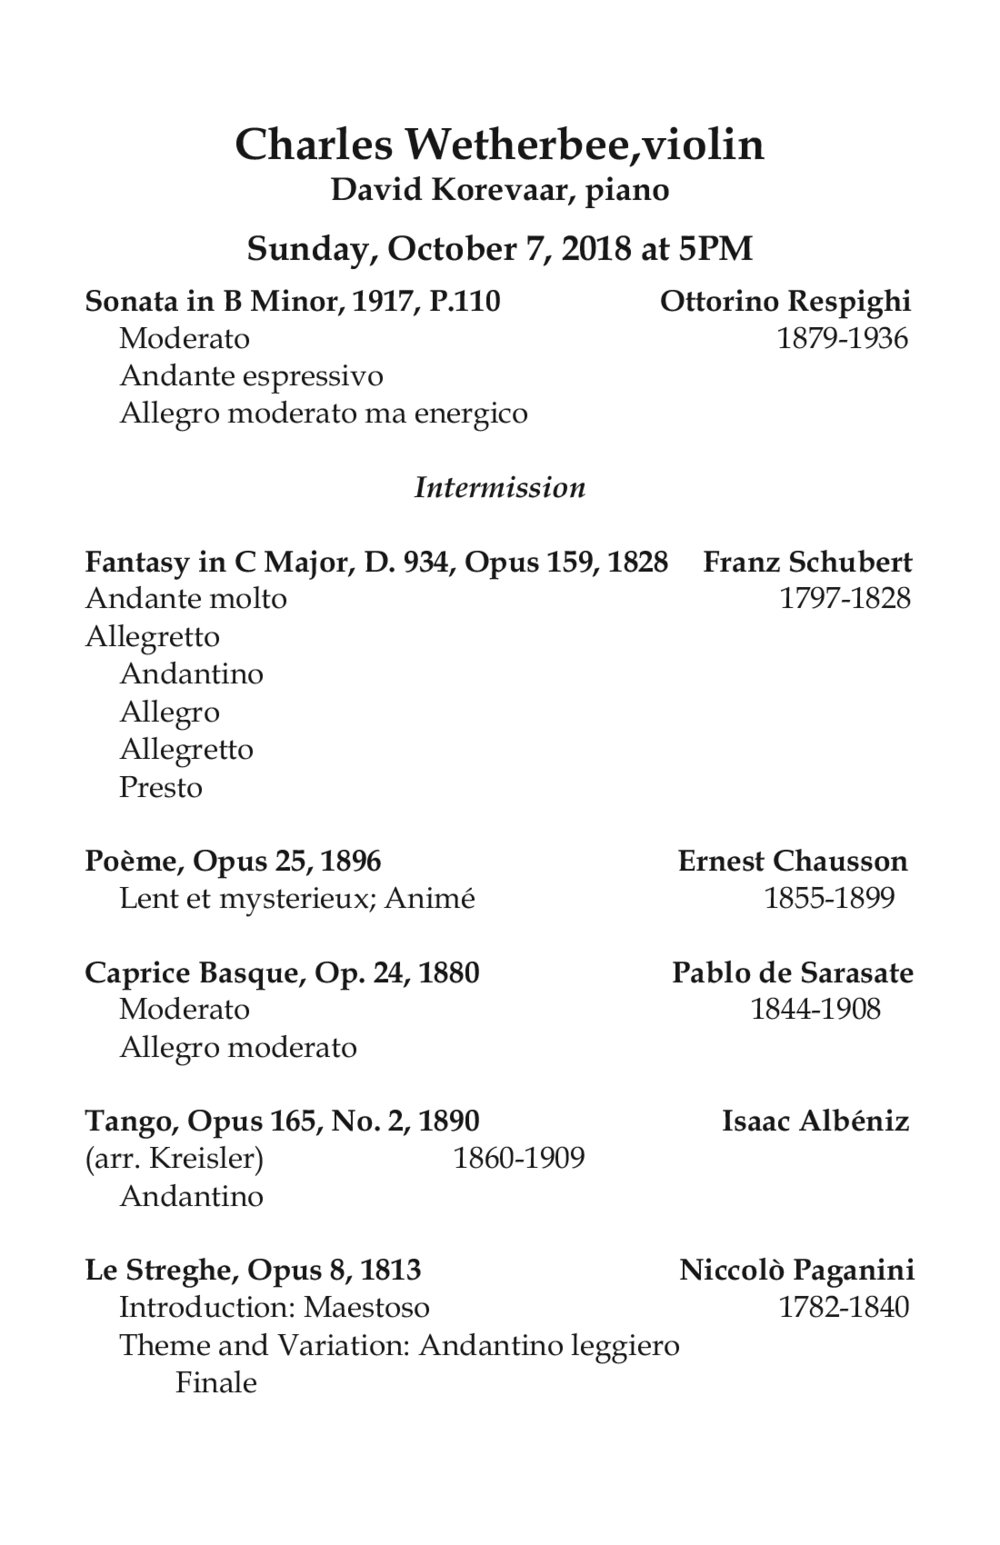 Promusica - program pages 2018-19-1.jpg